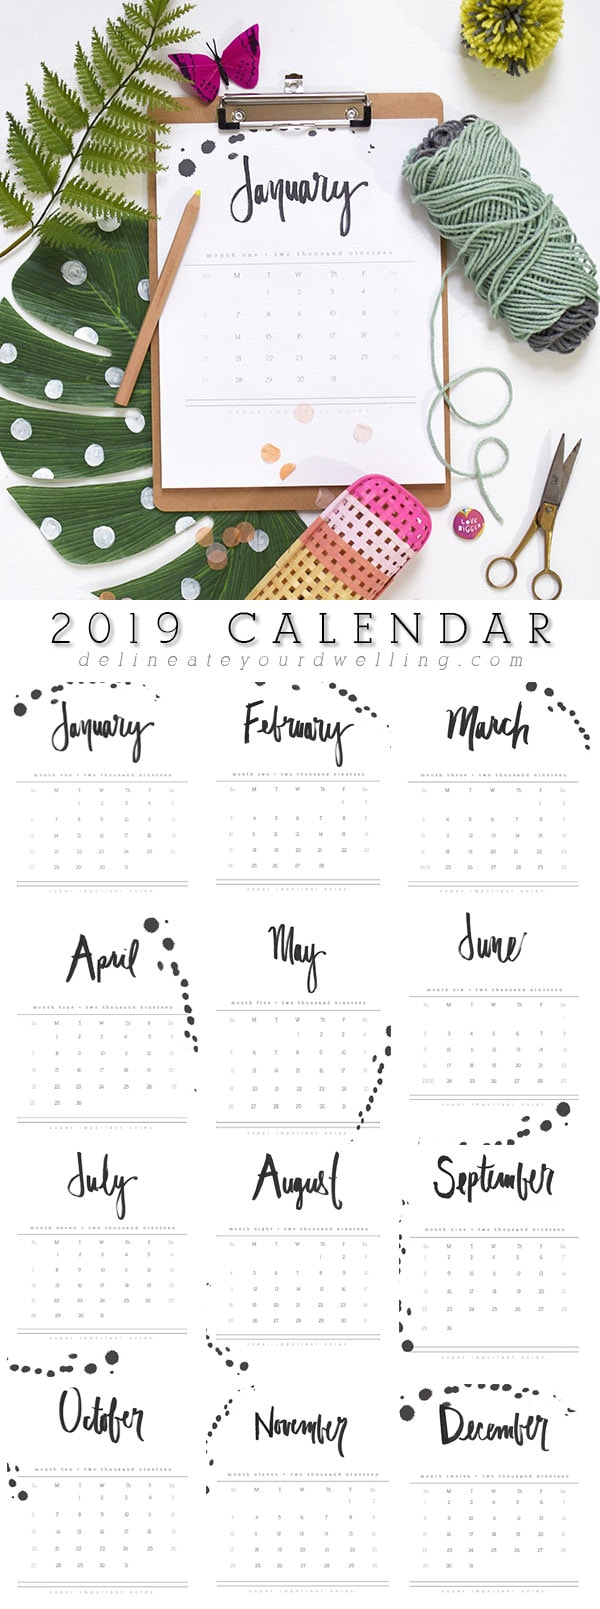 2019 Hand Letter Printable Calendar - Delineate Your Dwelling